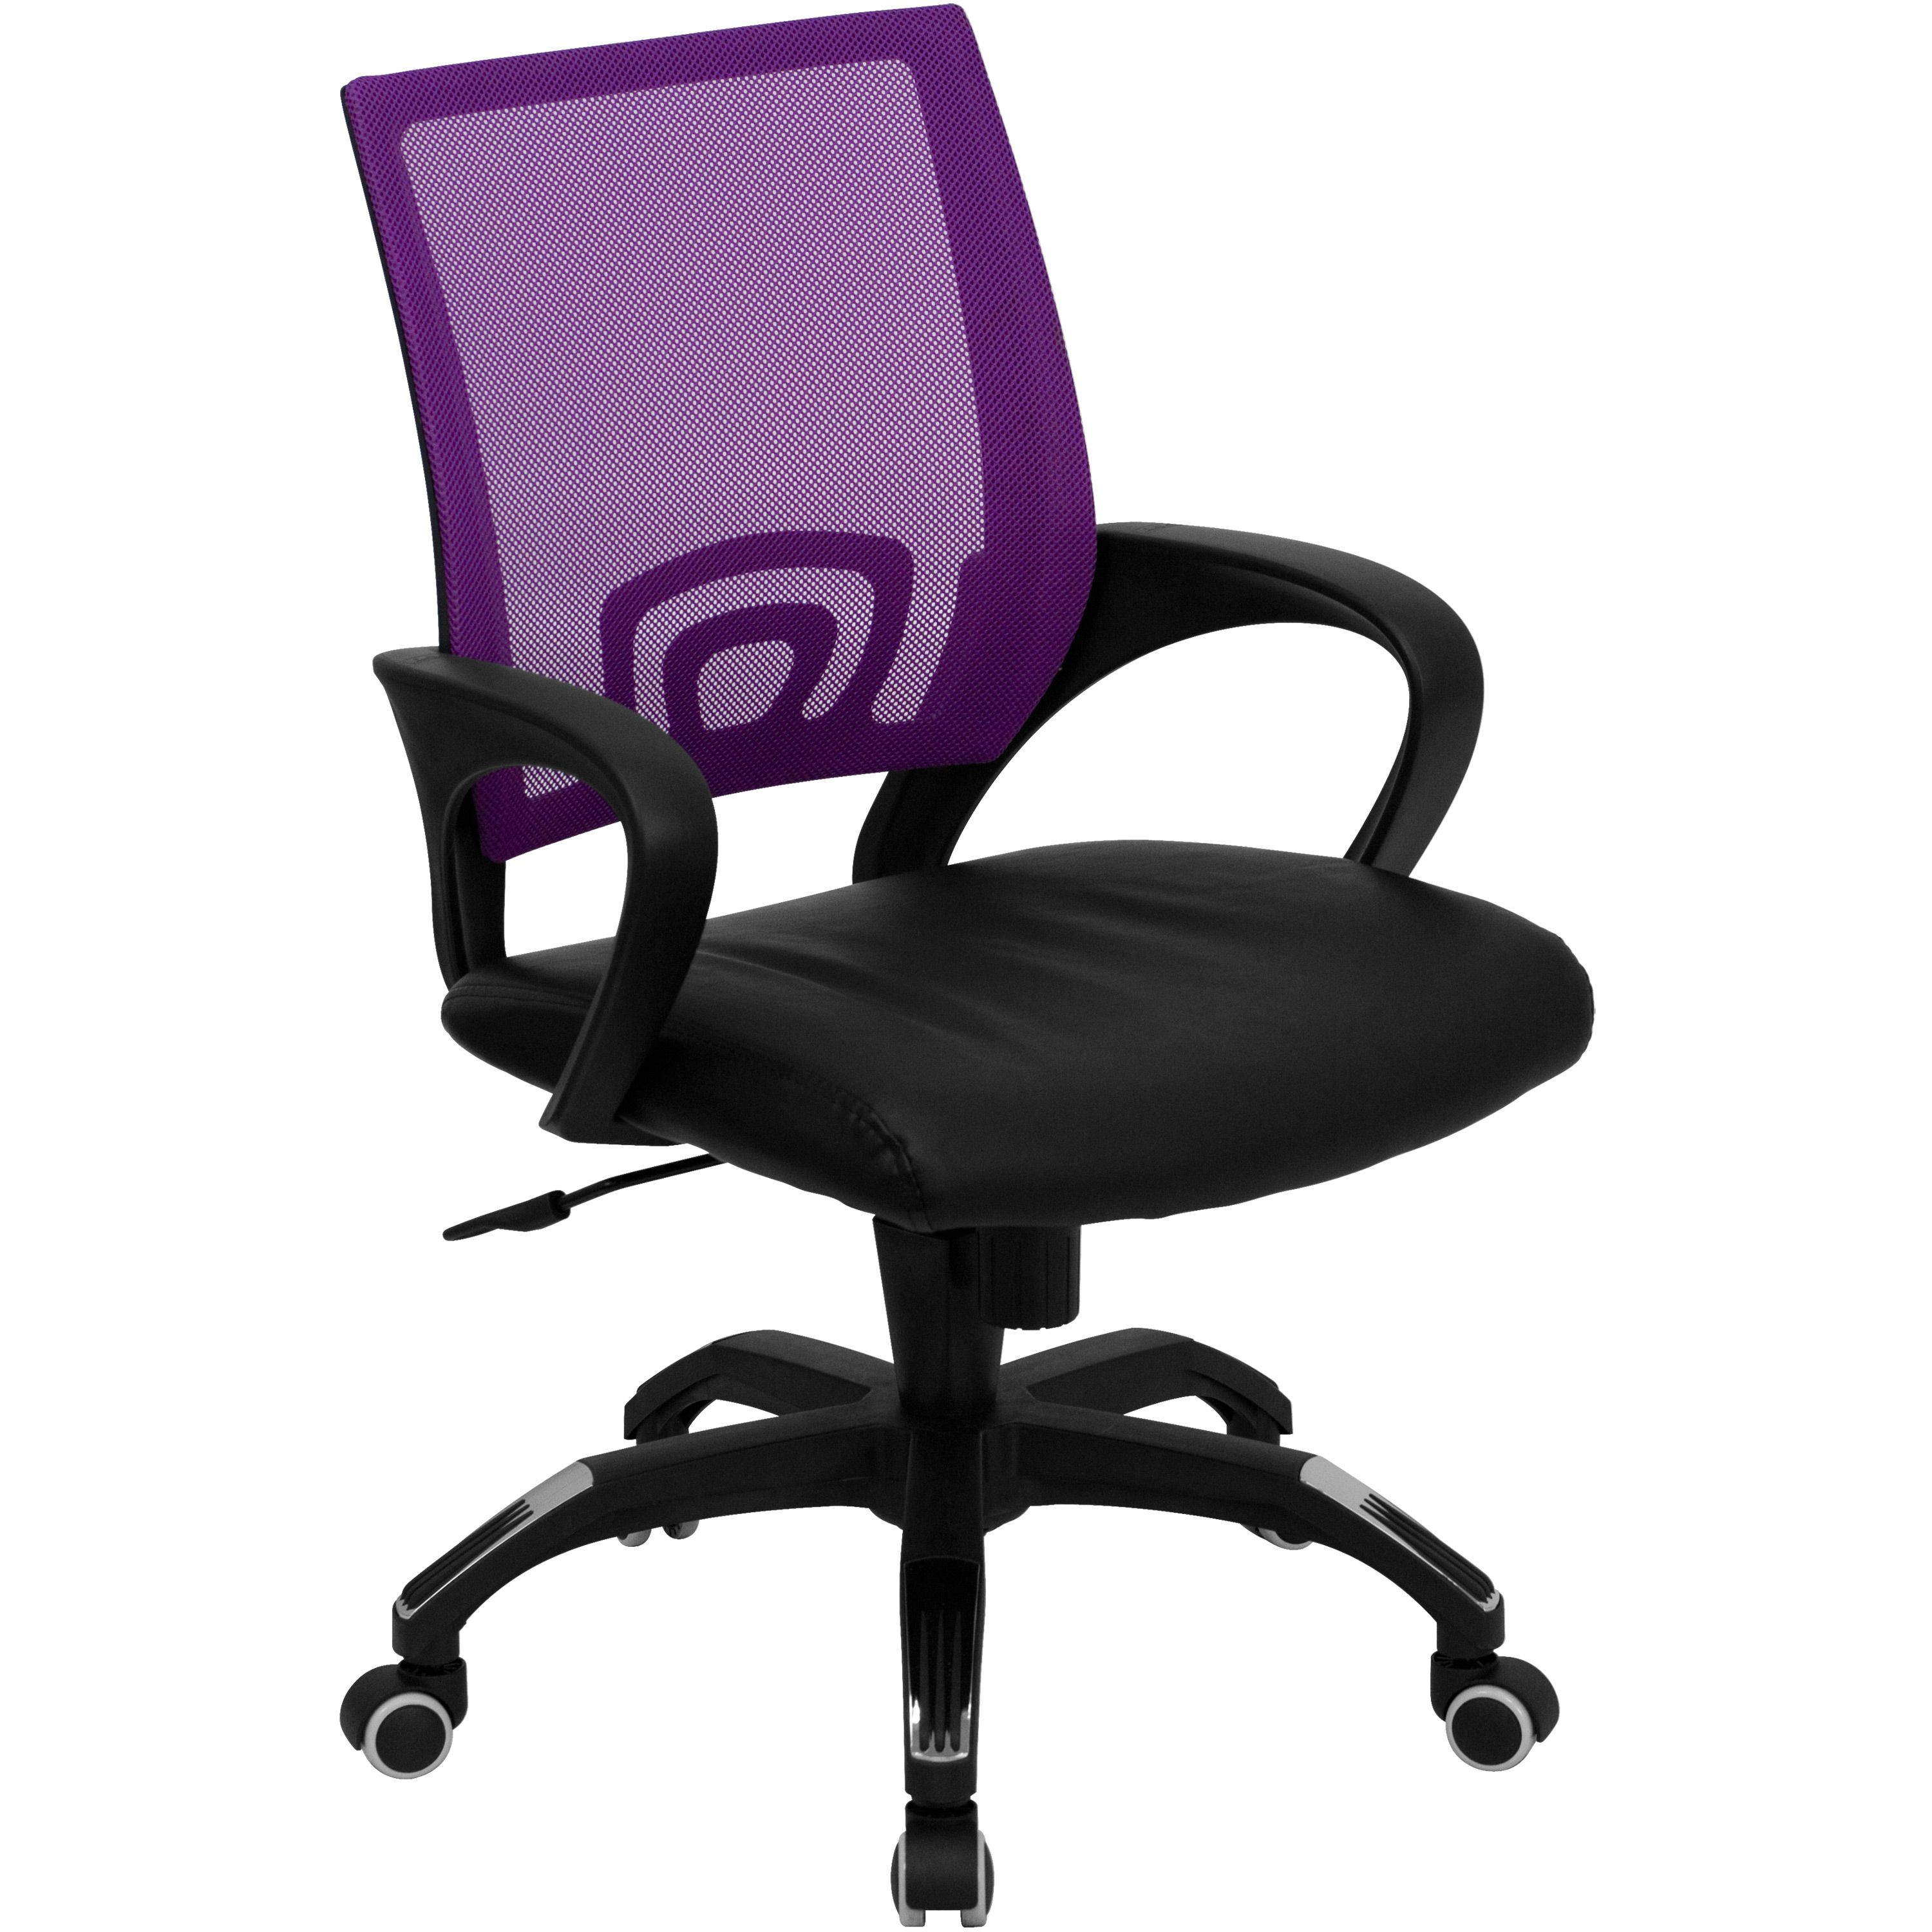 Cool puter Desk Chair